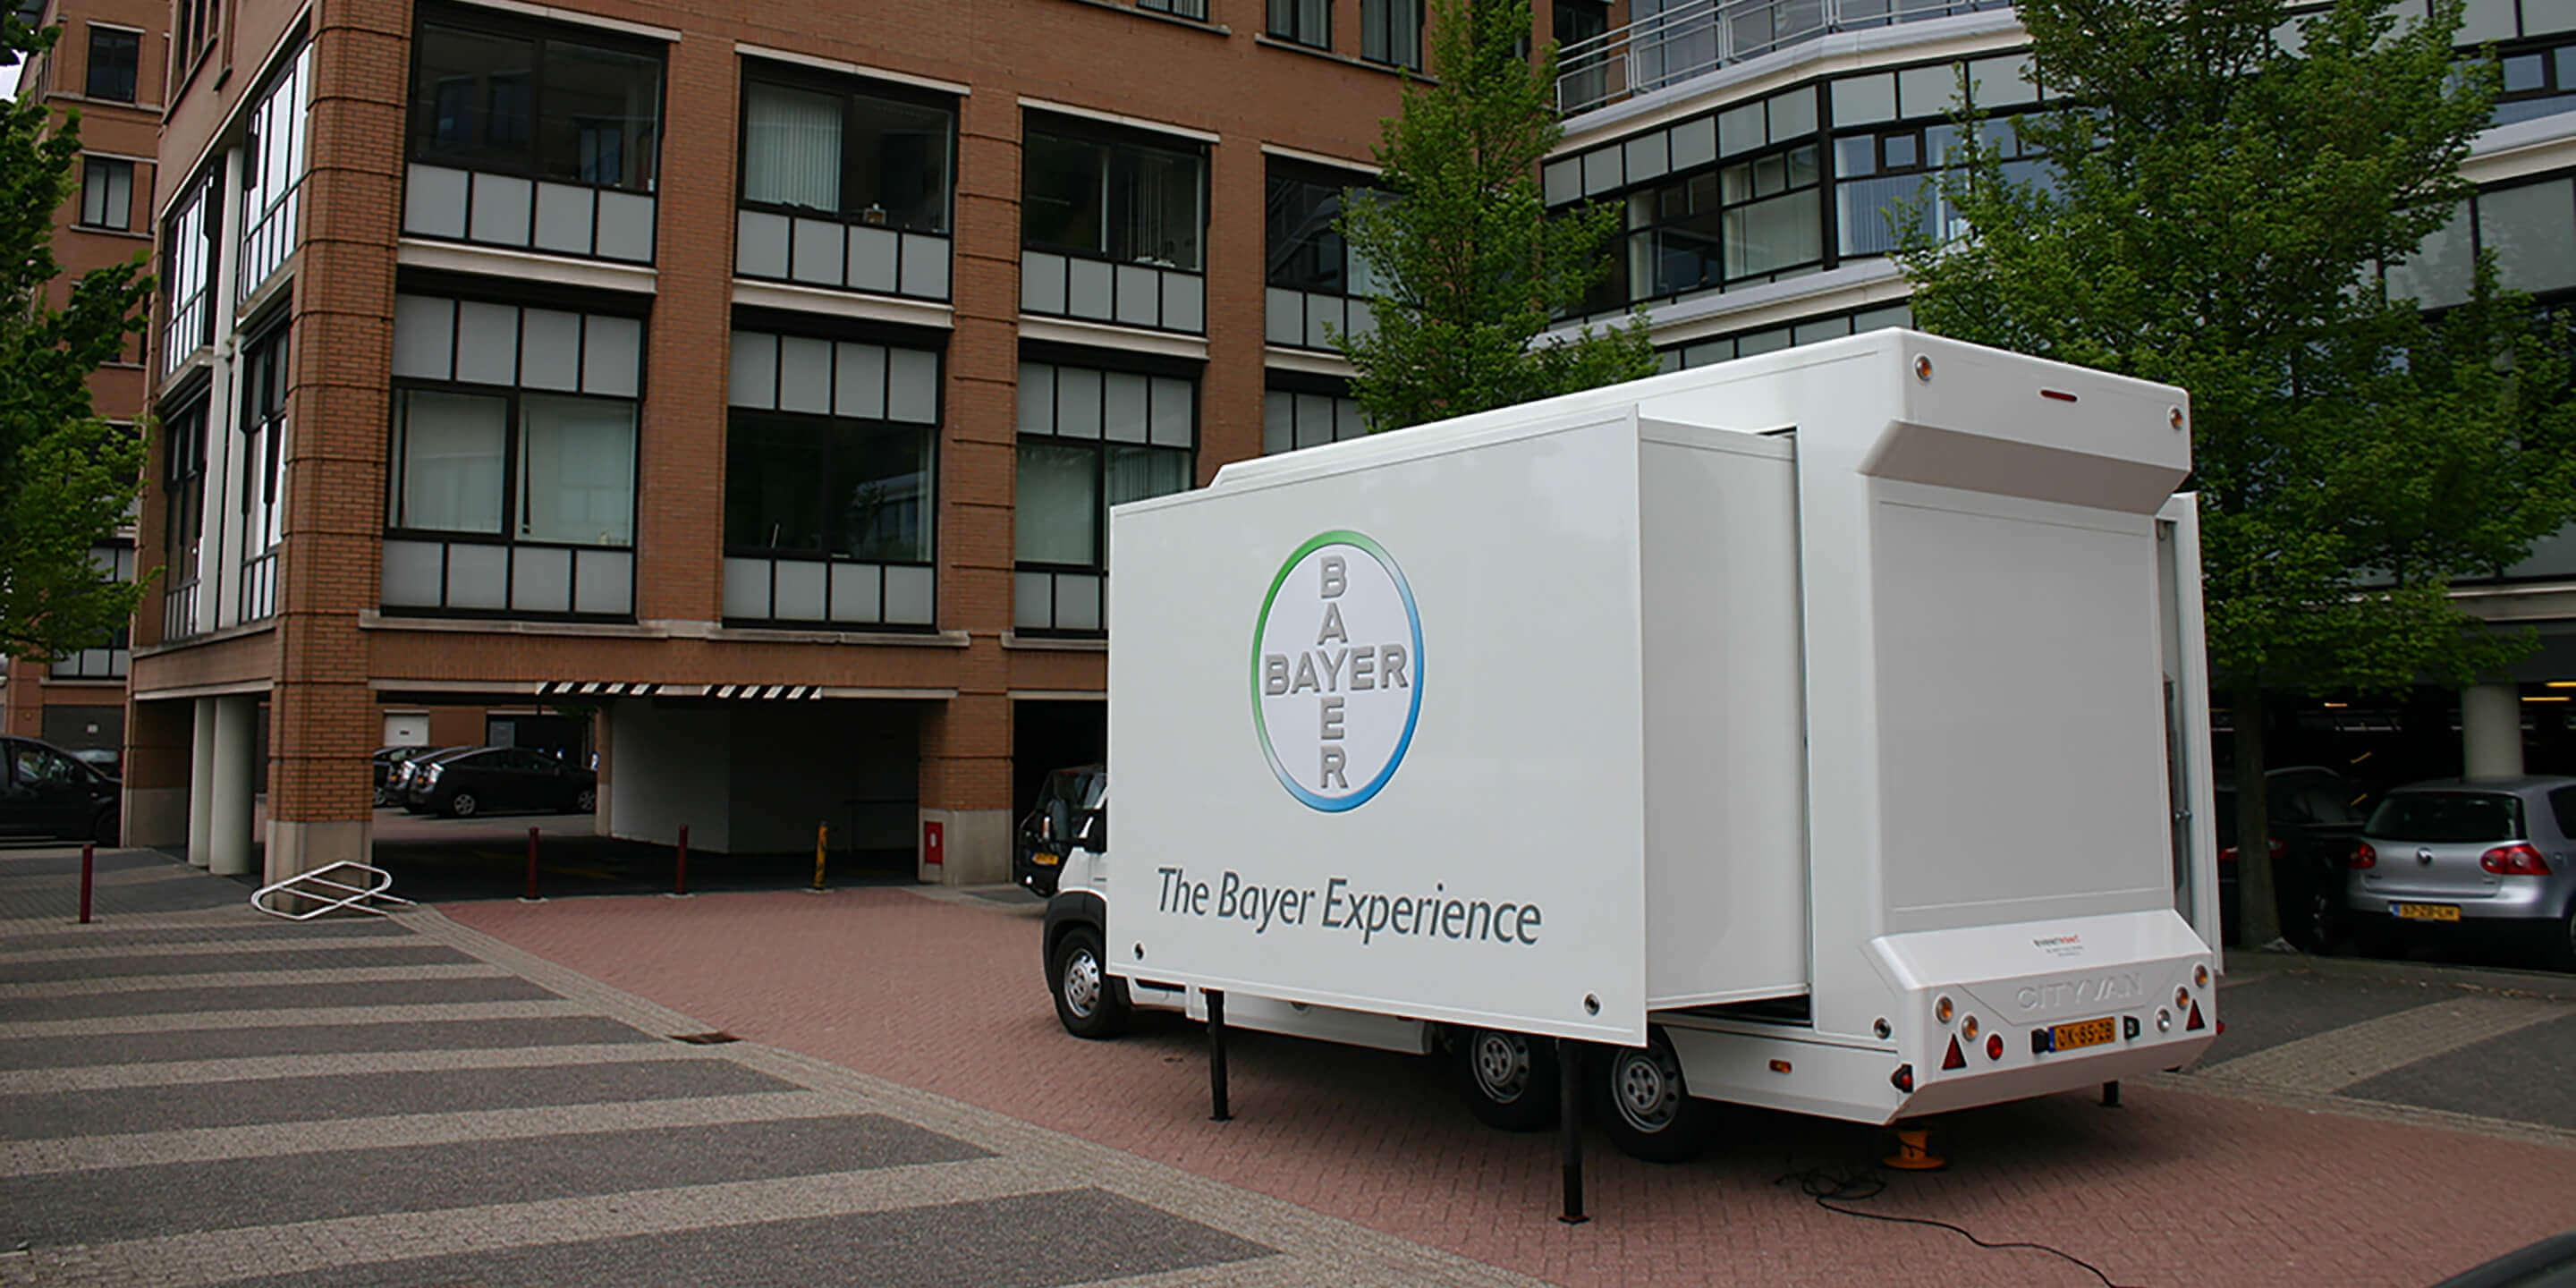 Exhibition Trailers: Relay Promotional Vehicle for Bayer Awareness Tour